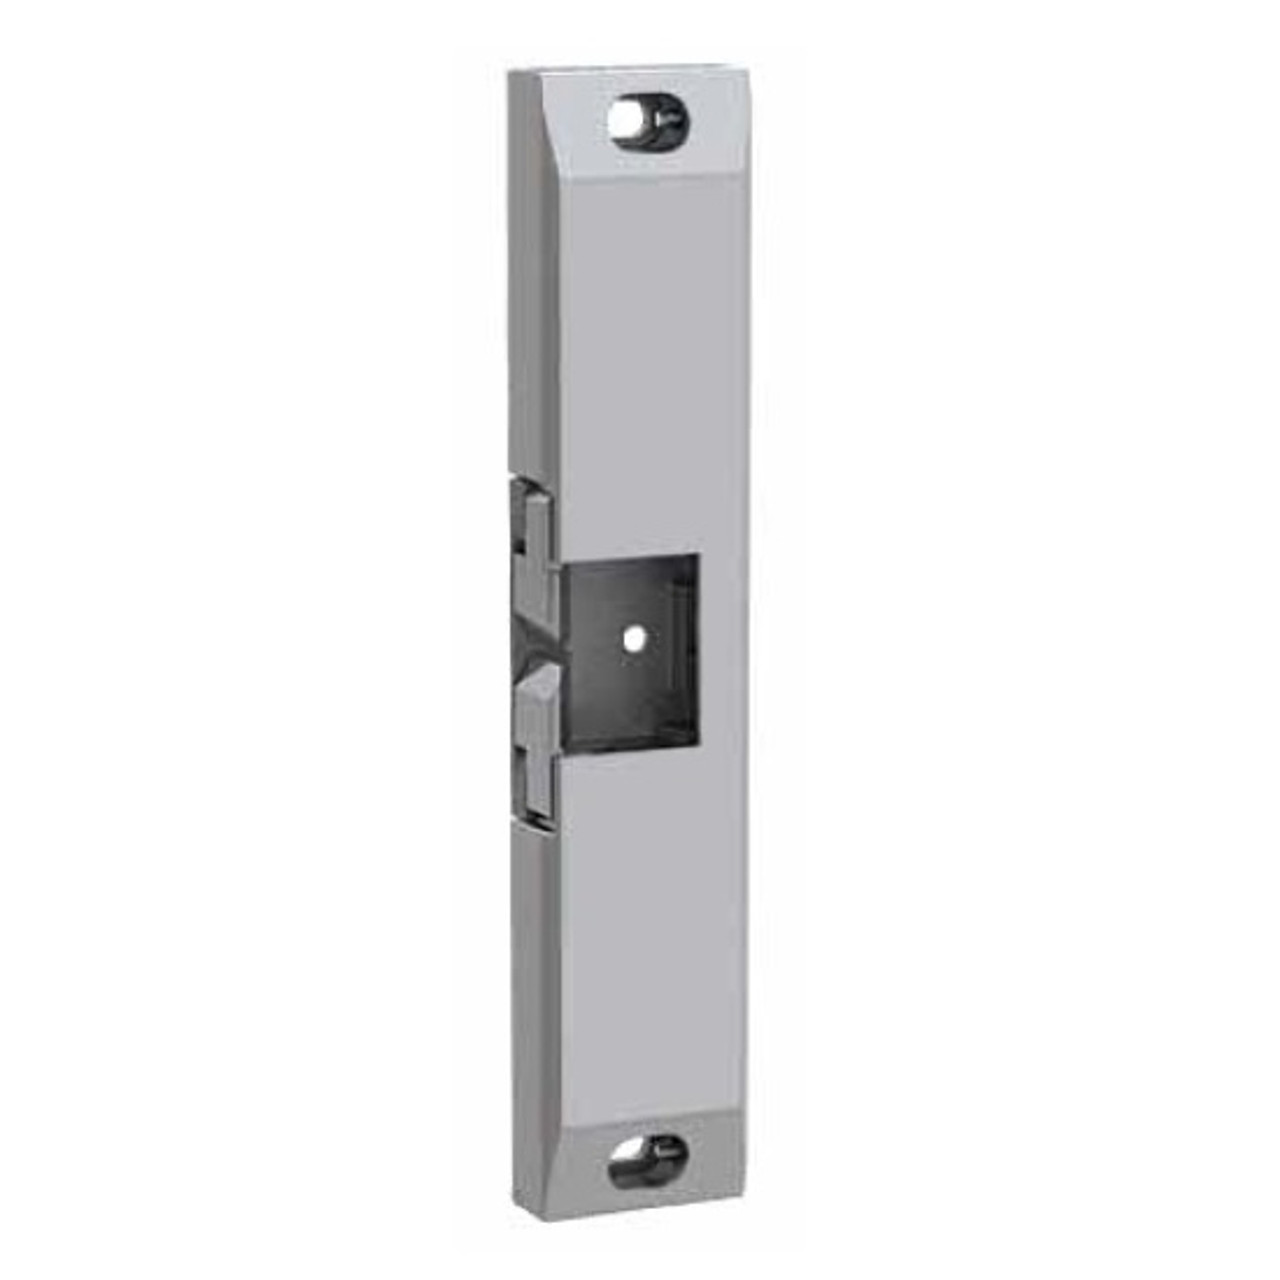 GENESIS 9600 HES Electric Door Strike With Stainless Steel Faceplate  sc 1 st  Smarter Building Tech & GENESIS 9600 HES Electric Door Strike HES 9600-12/24-630